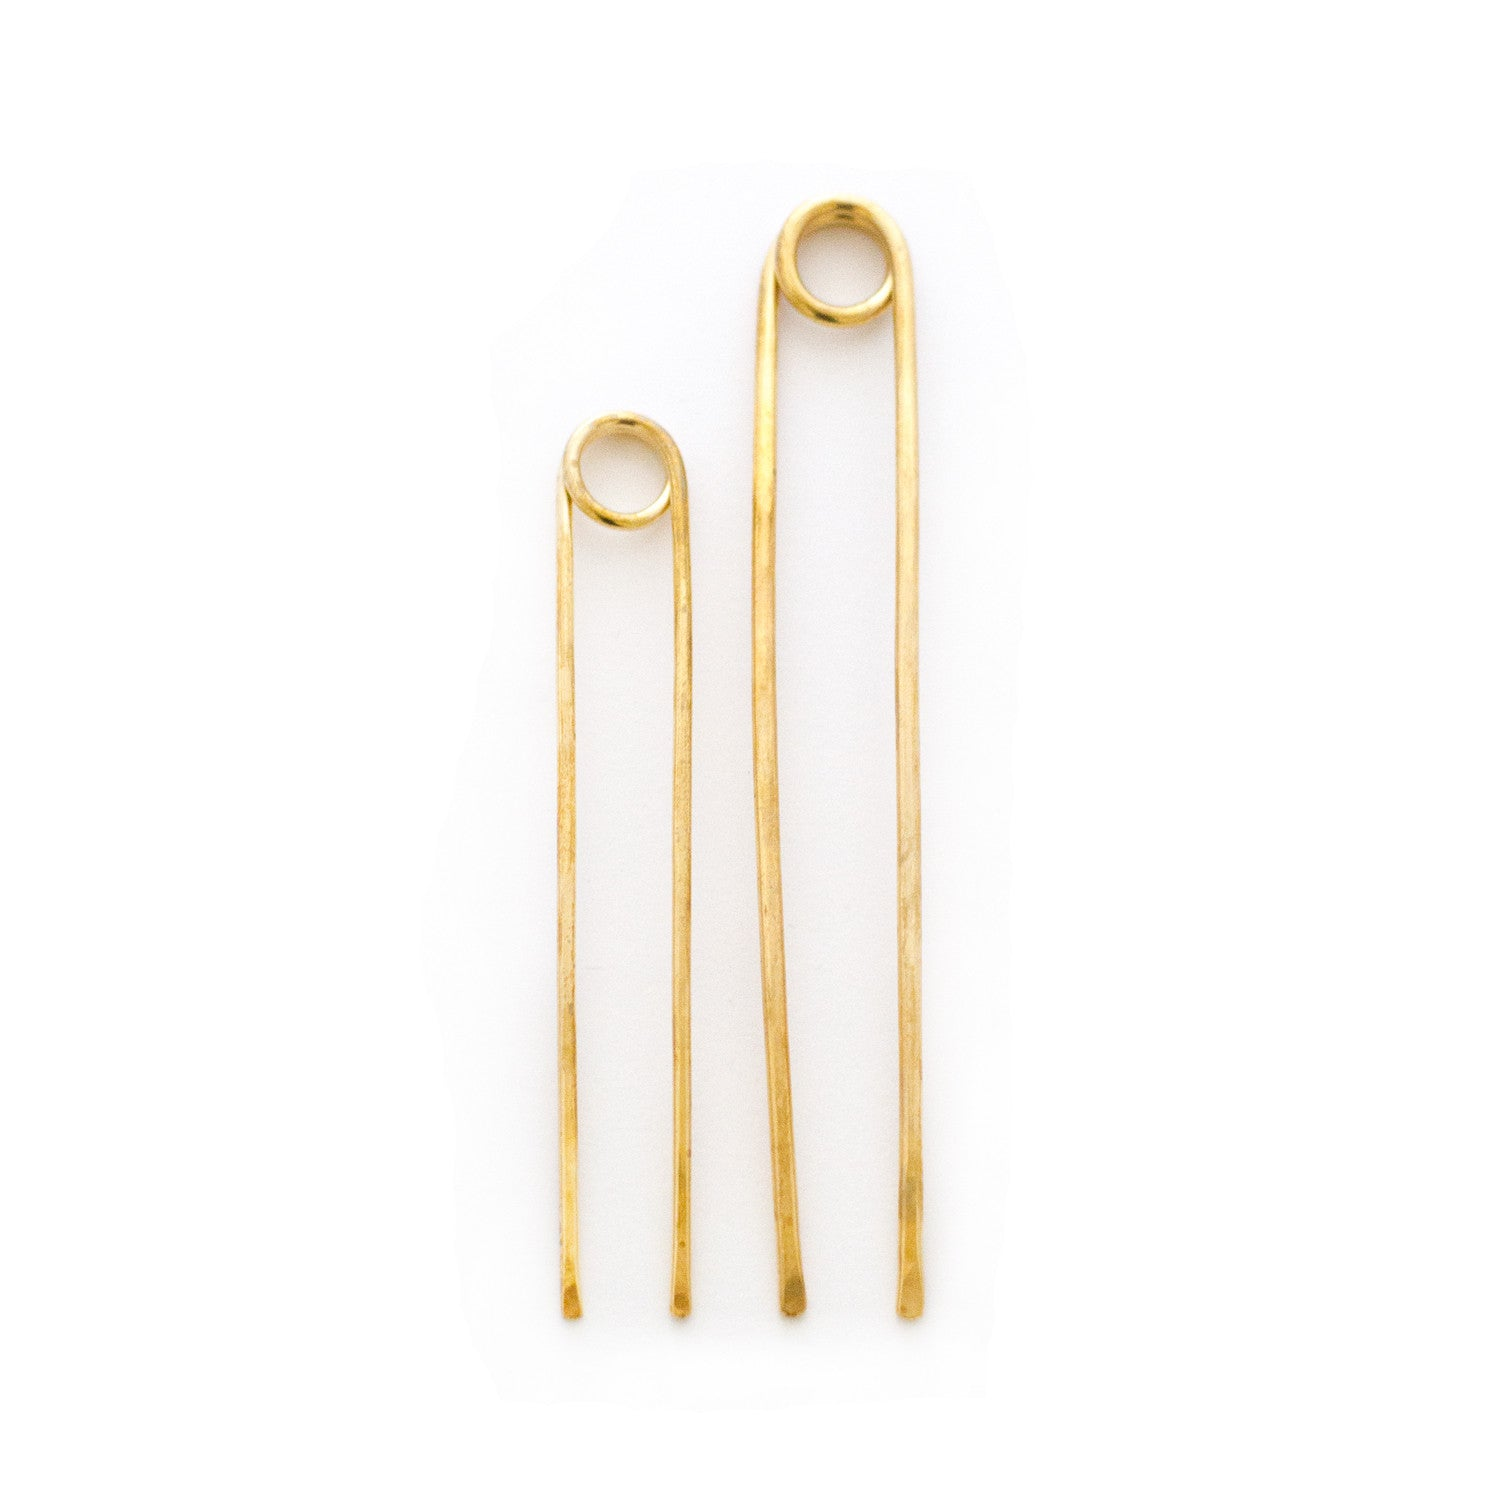 loop brass hair pin for buns topknots french twists